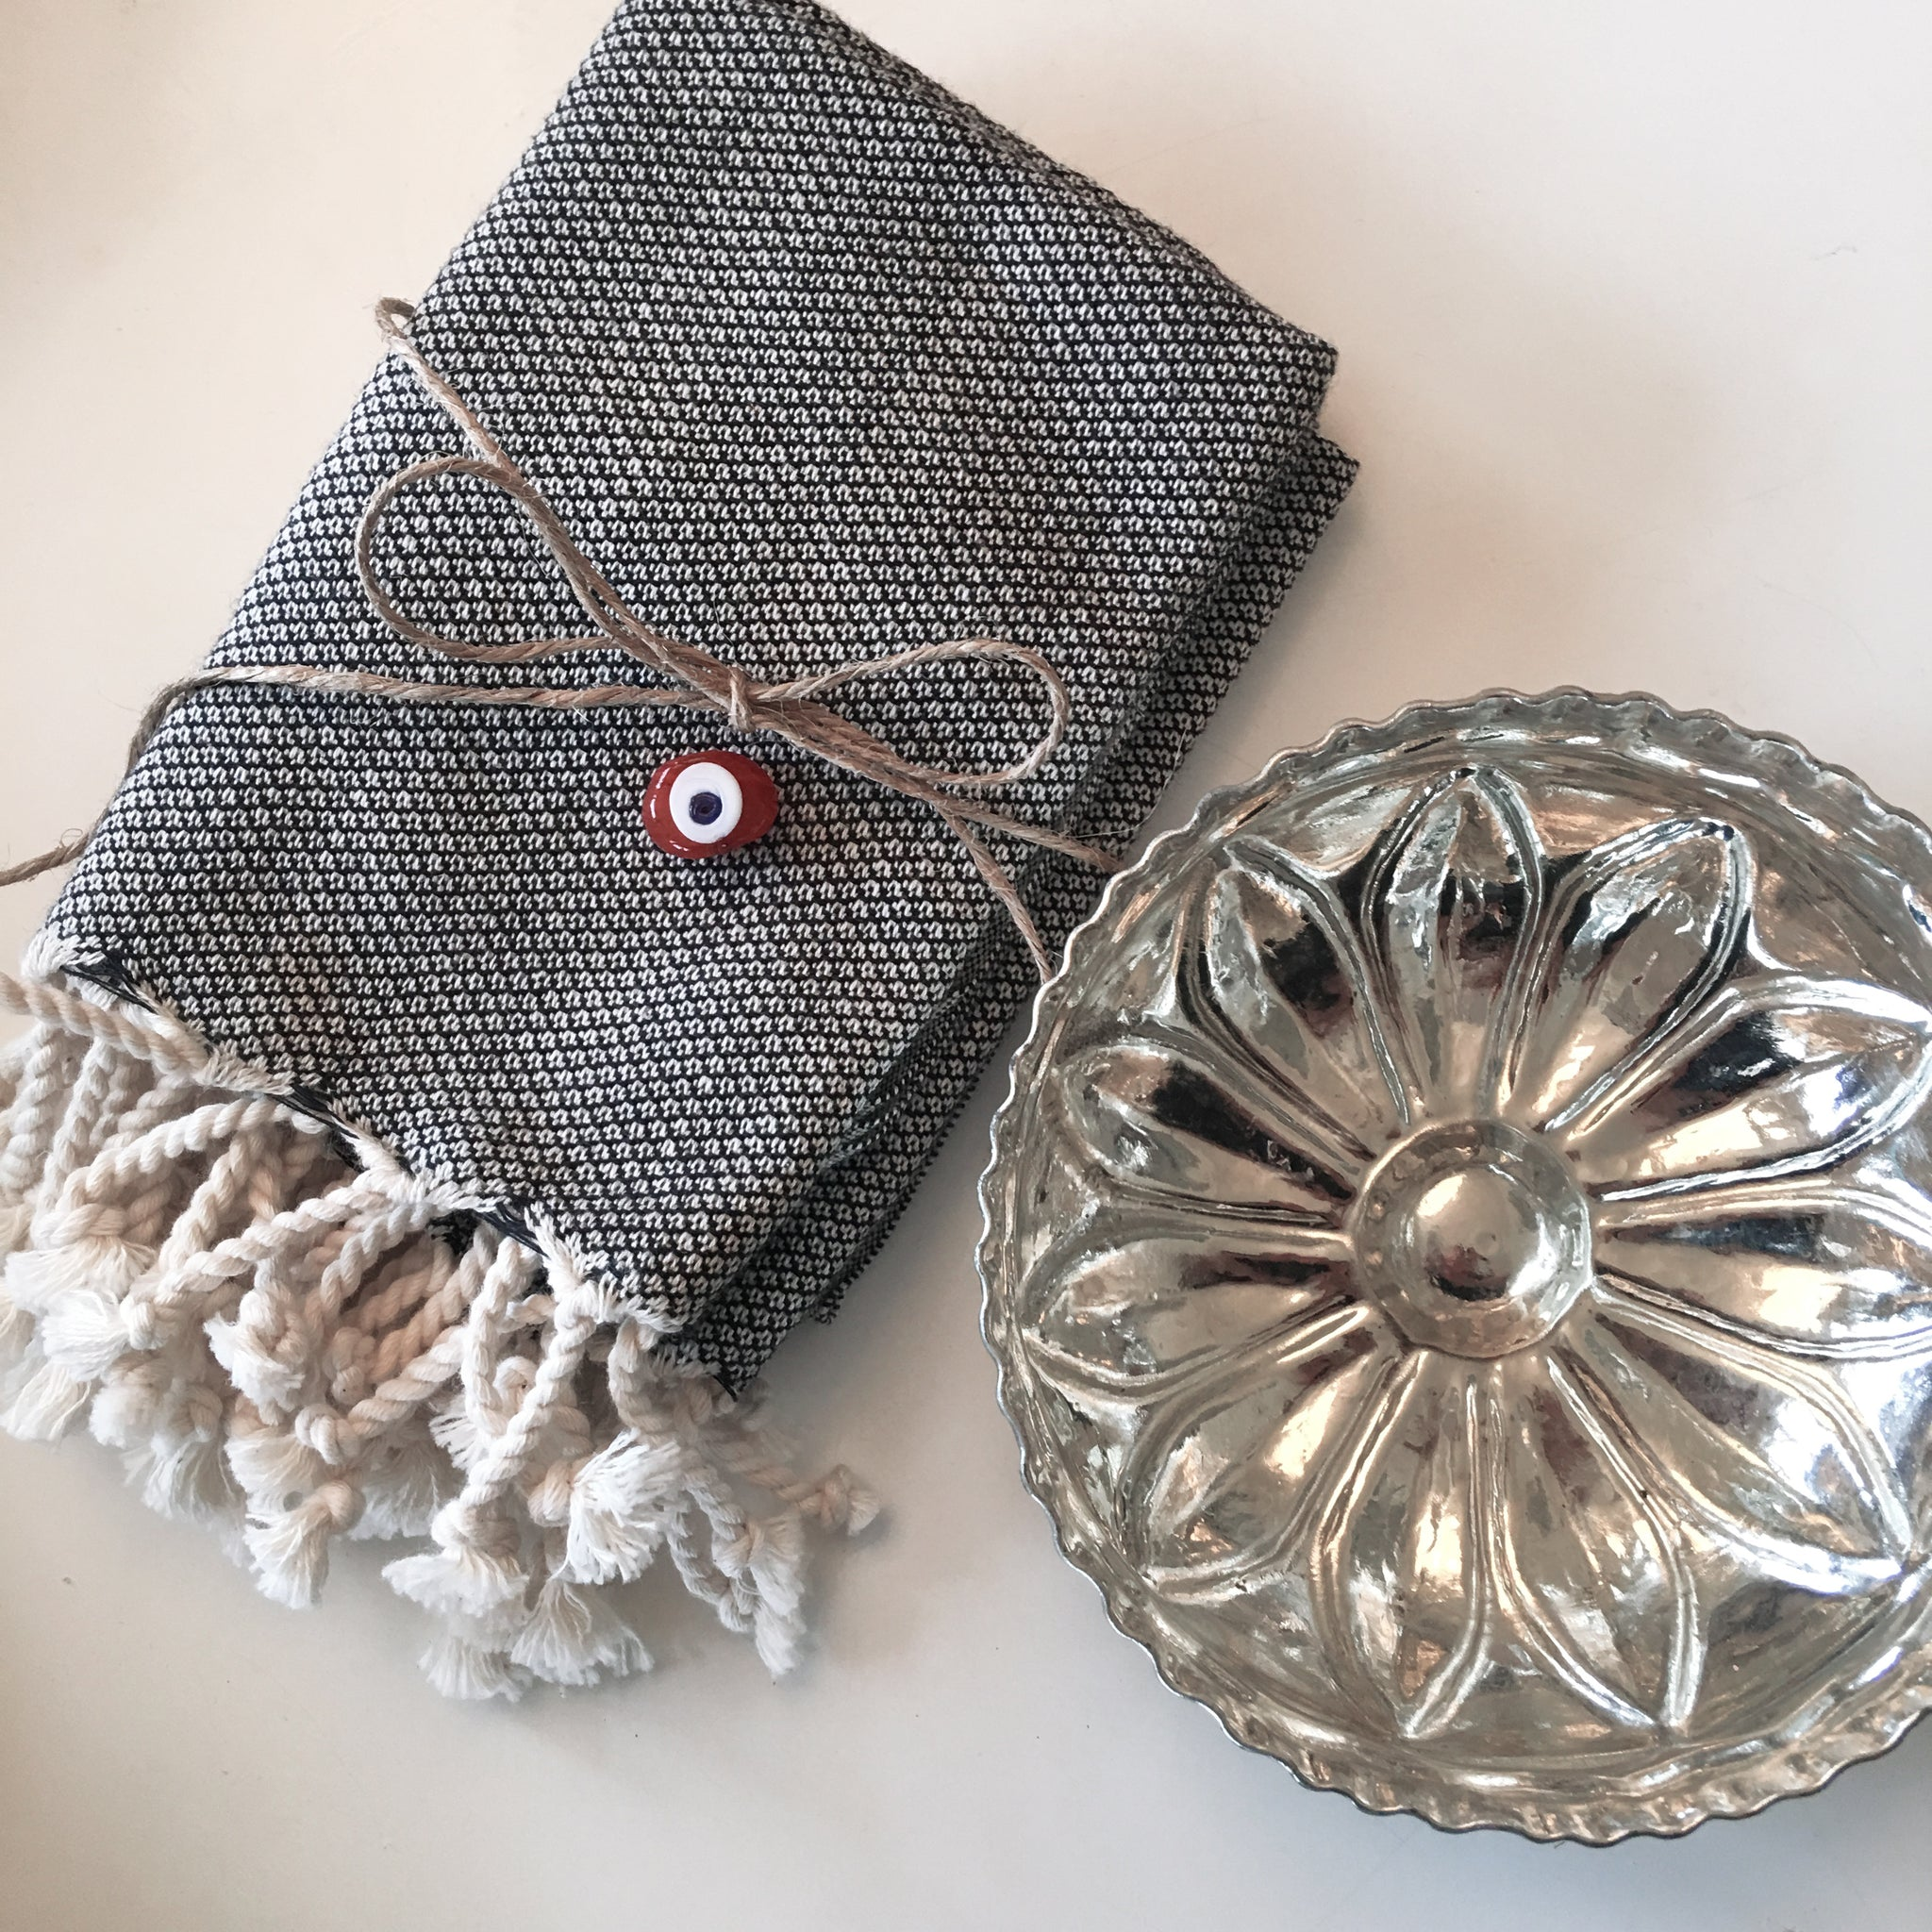 New! Gift Set: 2 Turkish Handwoven Hand Towels & Turkish Bath Bowl Set